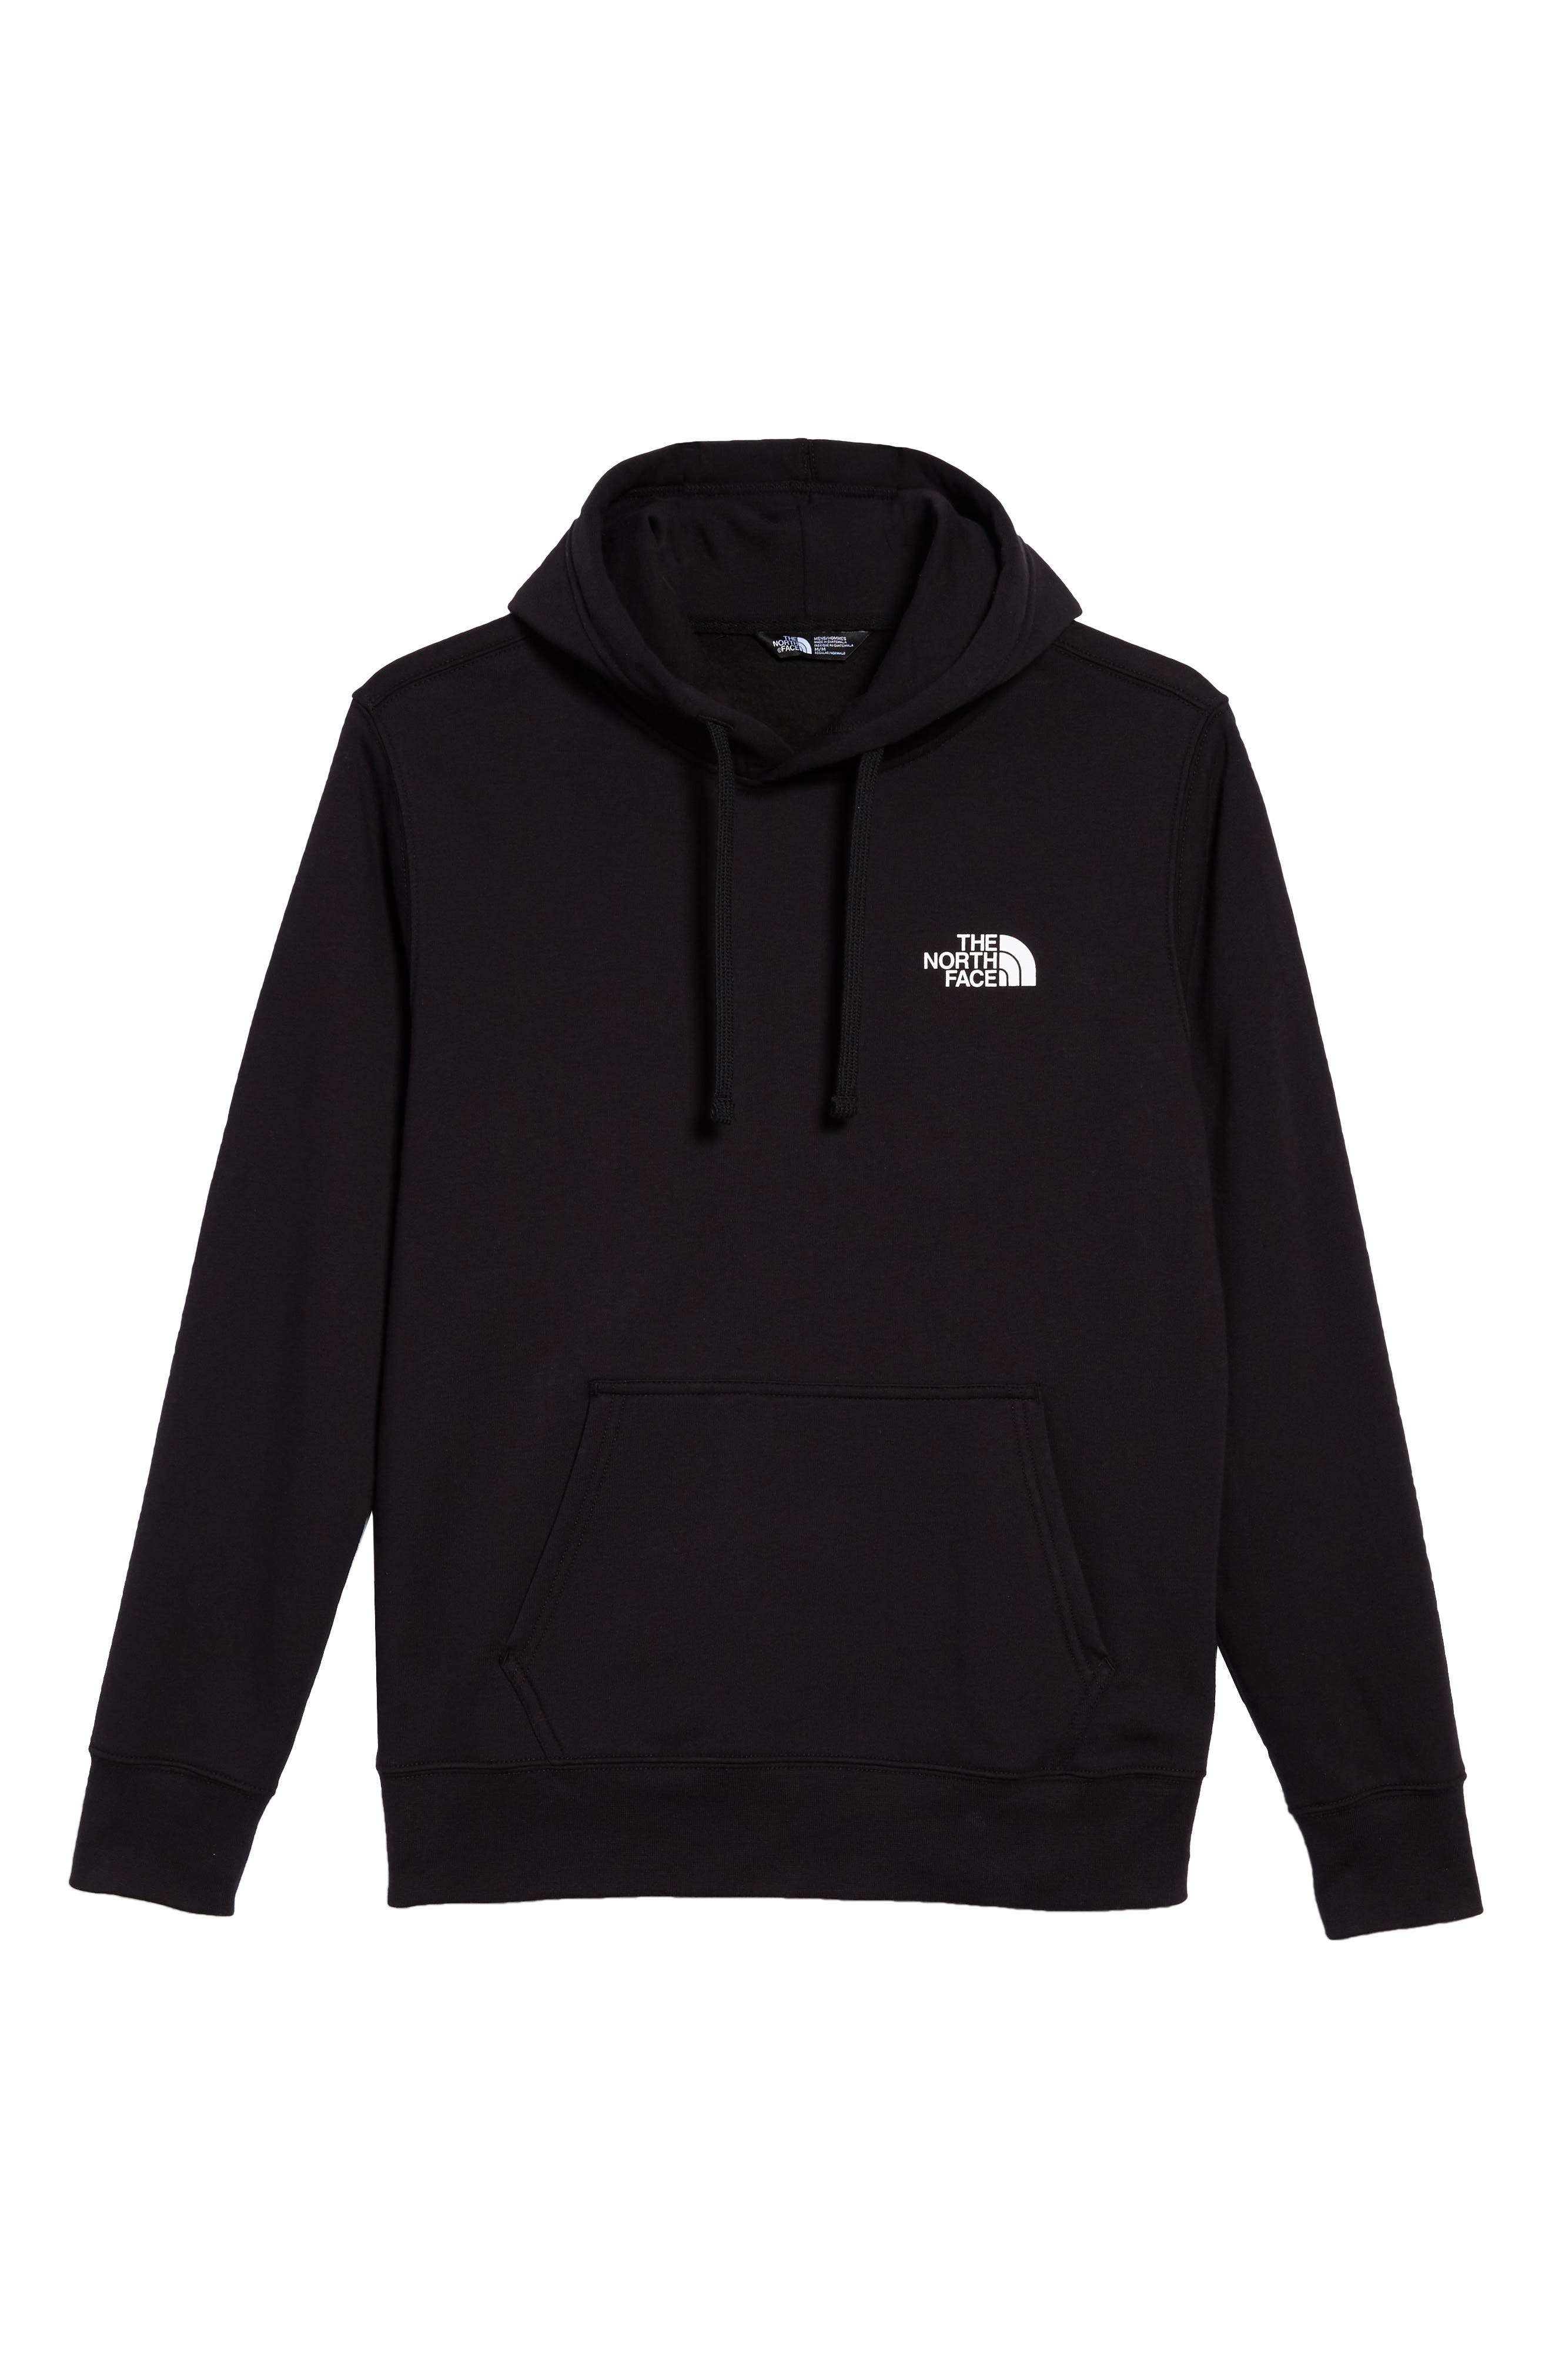 Red Box Hoodie,                             Alternate thumbnail 6, color,                             001